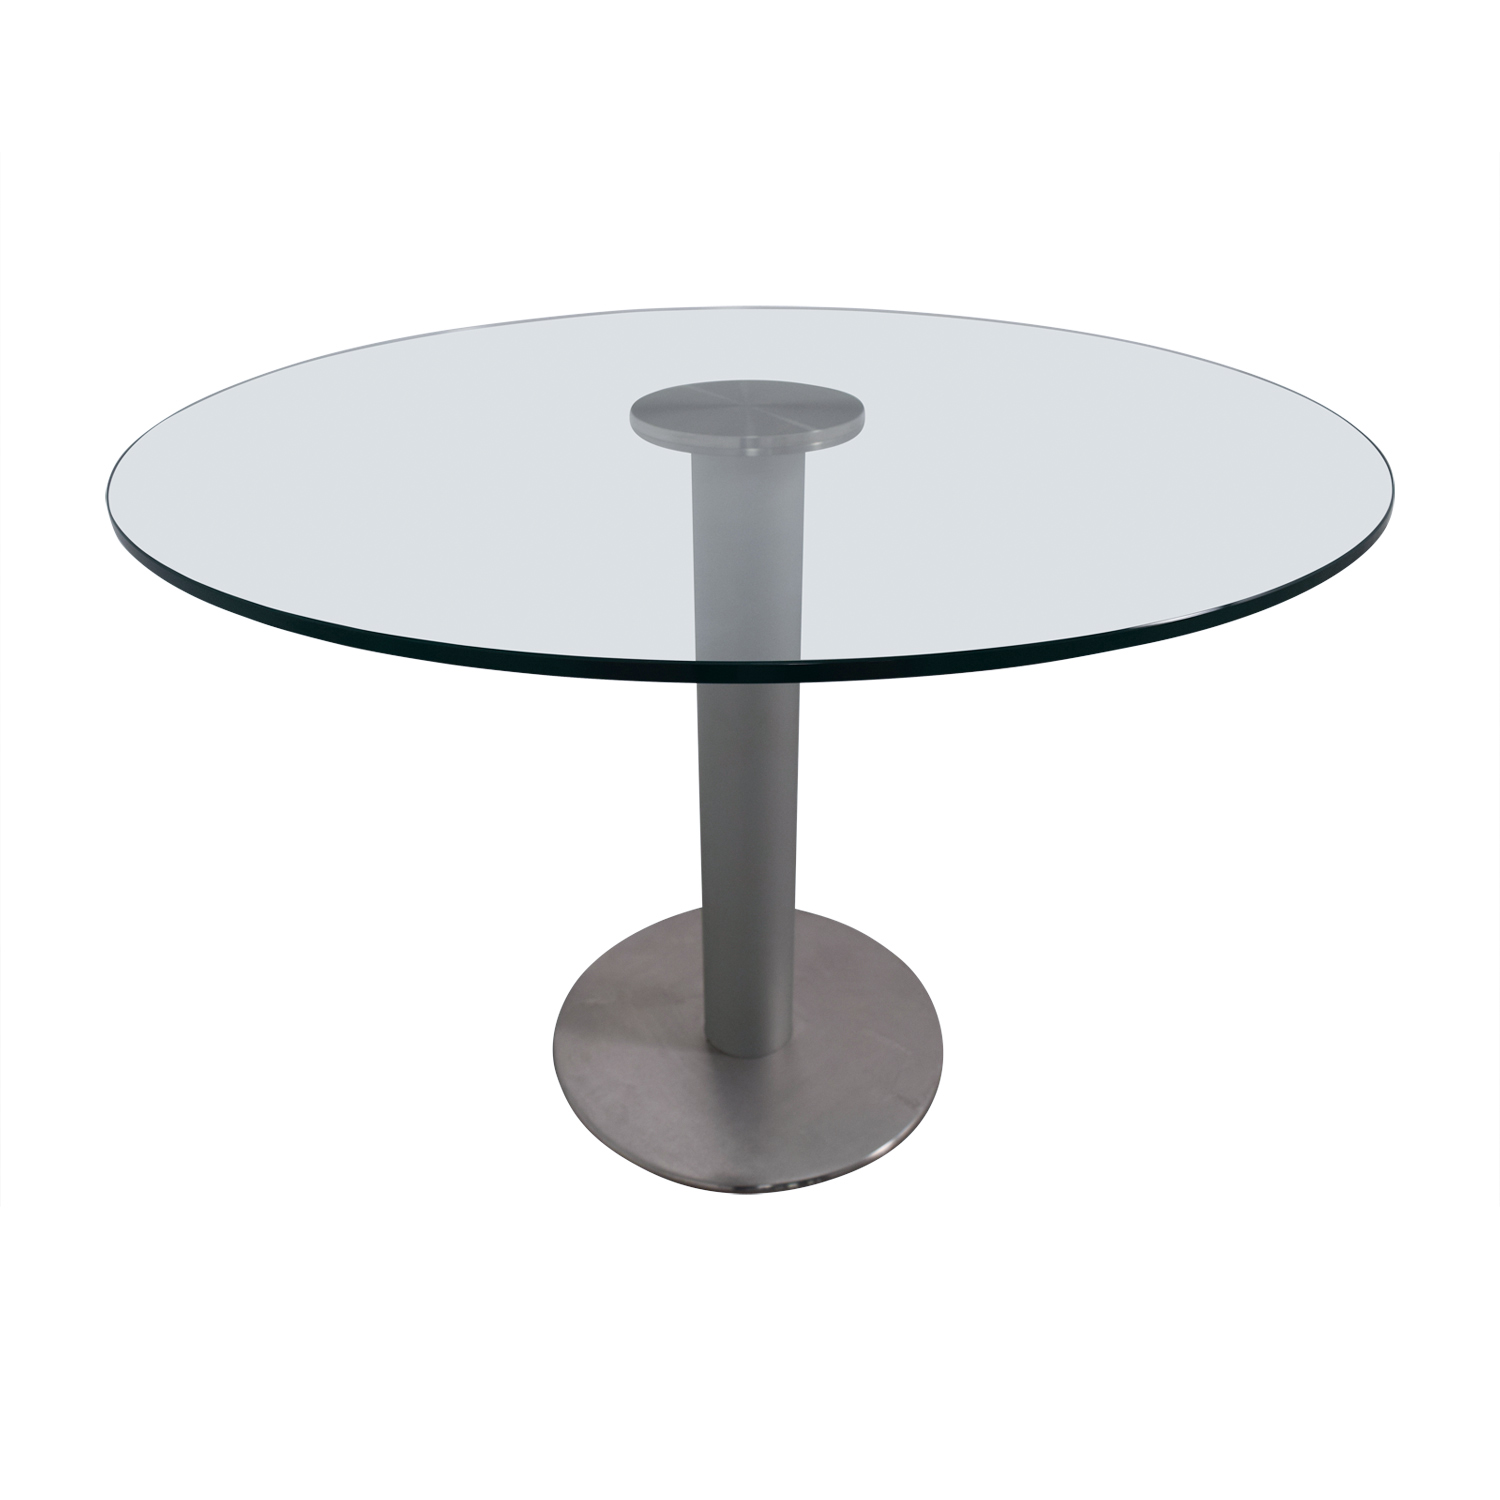 Stua Design Furniture Stua Design Furniture Zero Glass and Chrome Table